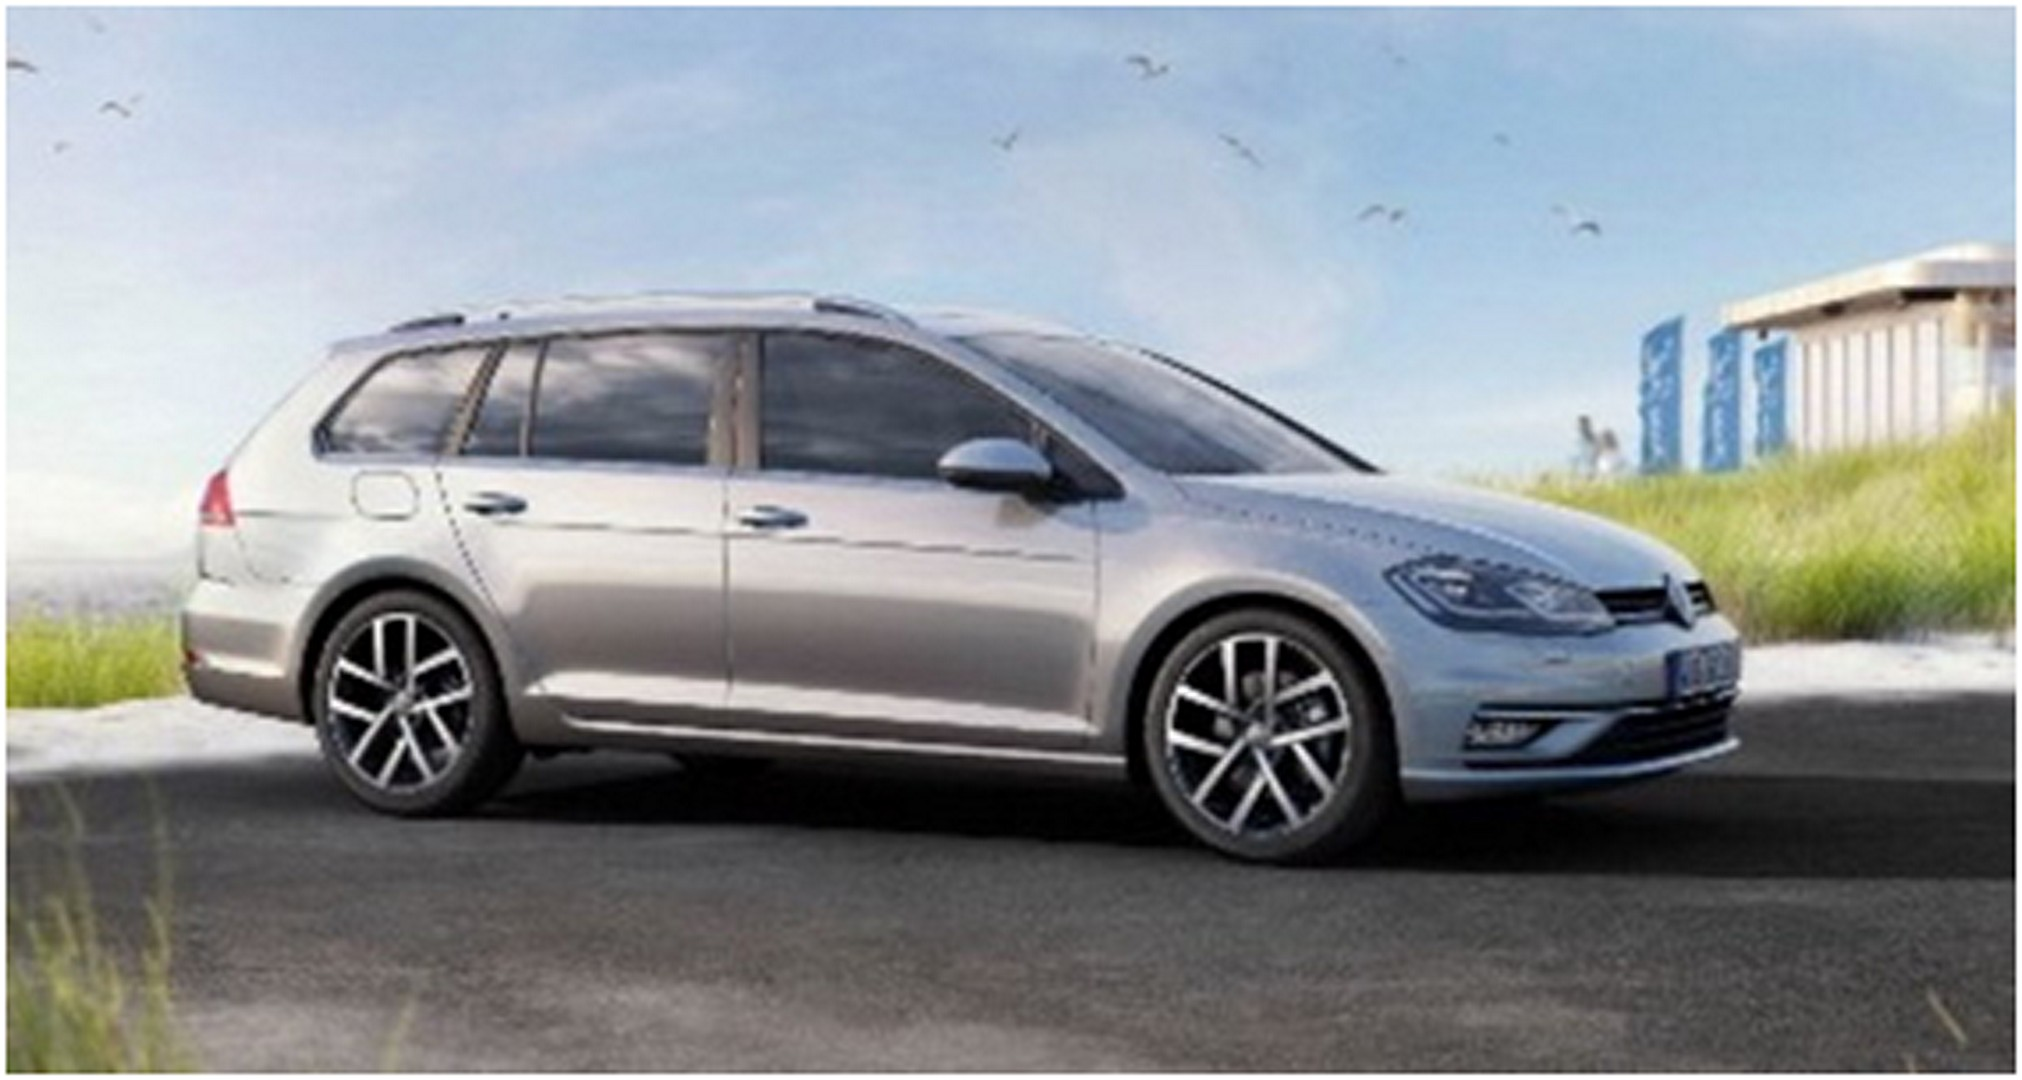 2017 VW Golf Facelift Leaked in Stunning Liquid Gold Color ...